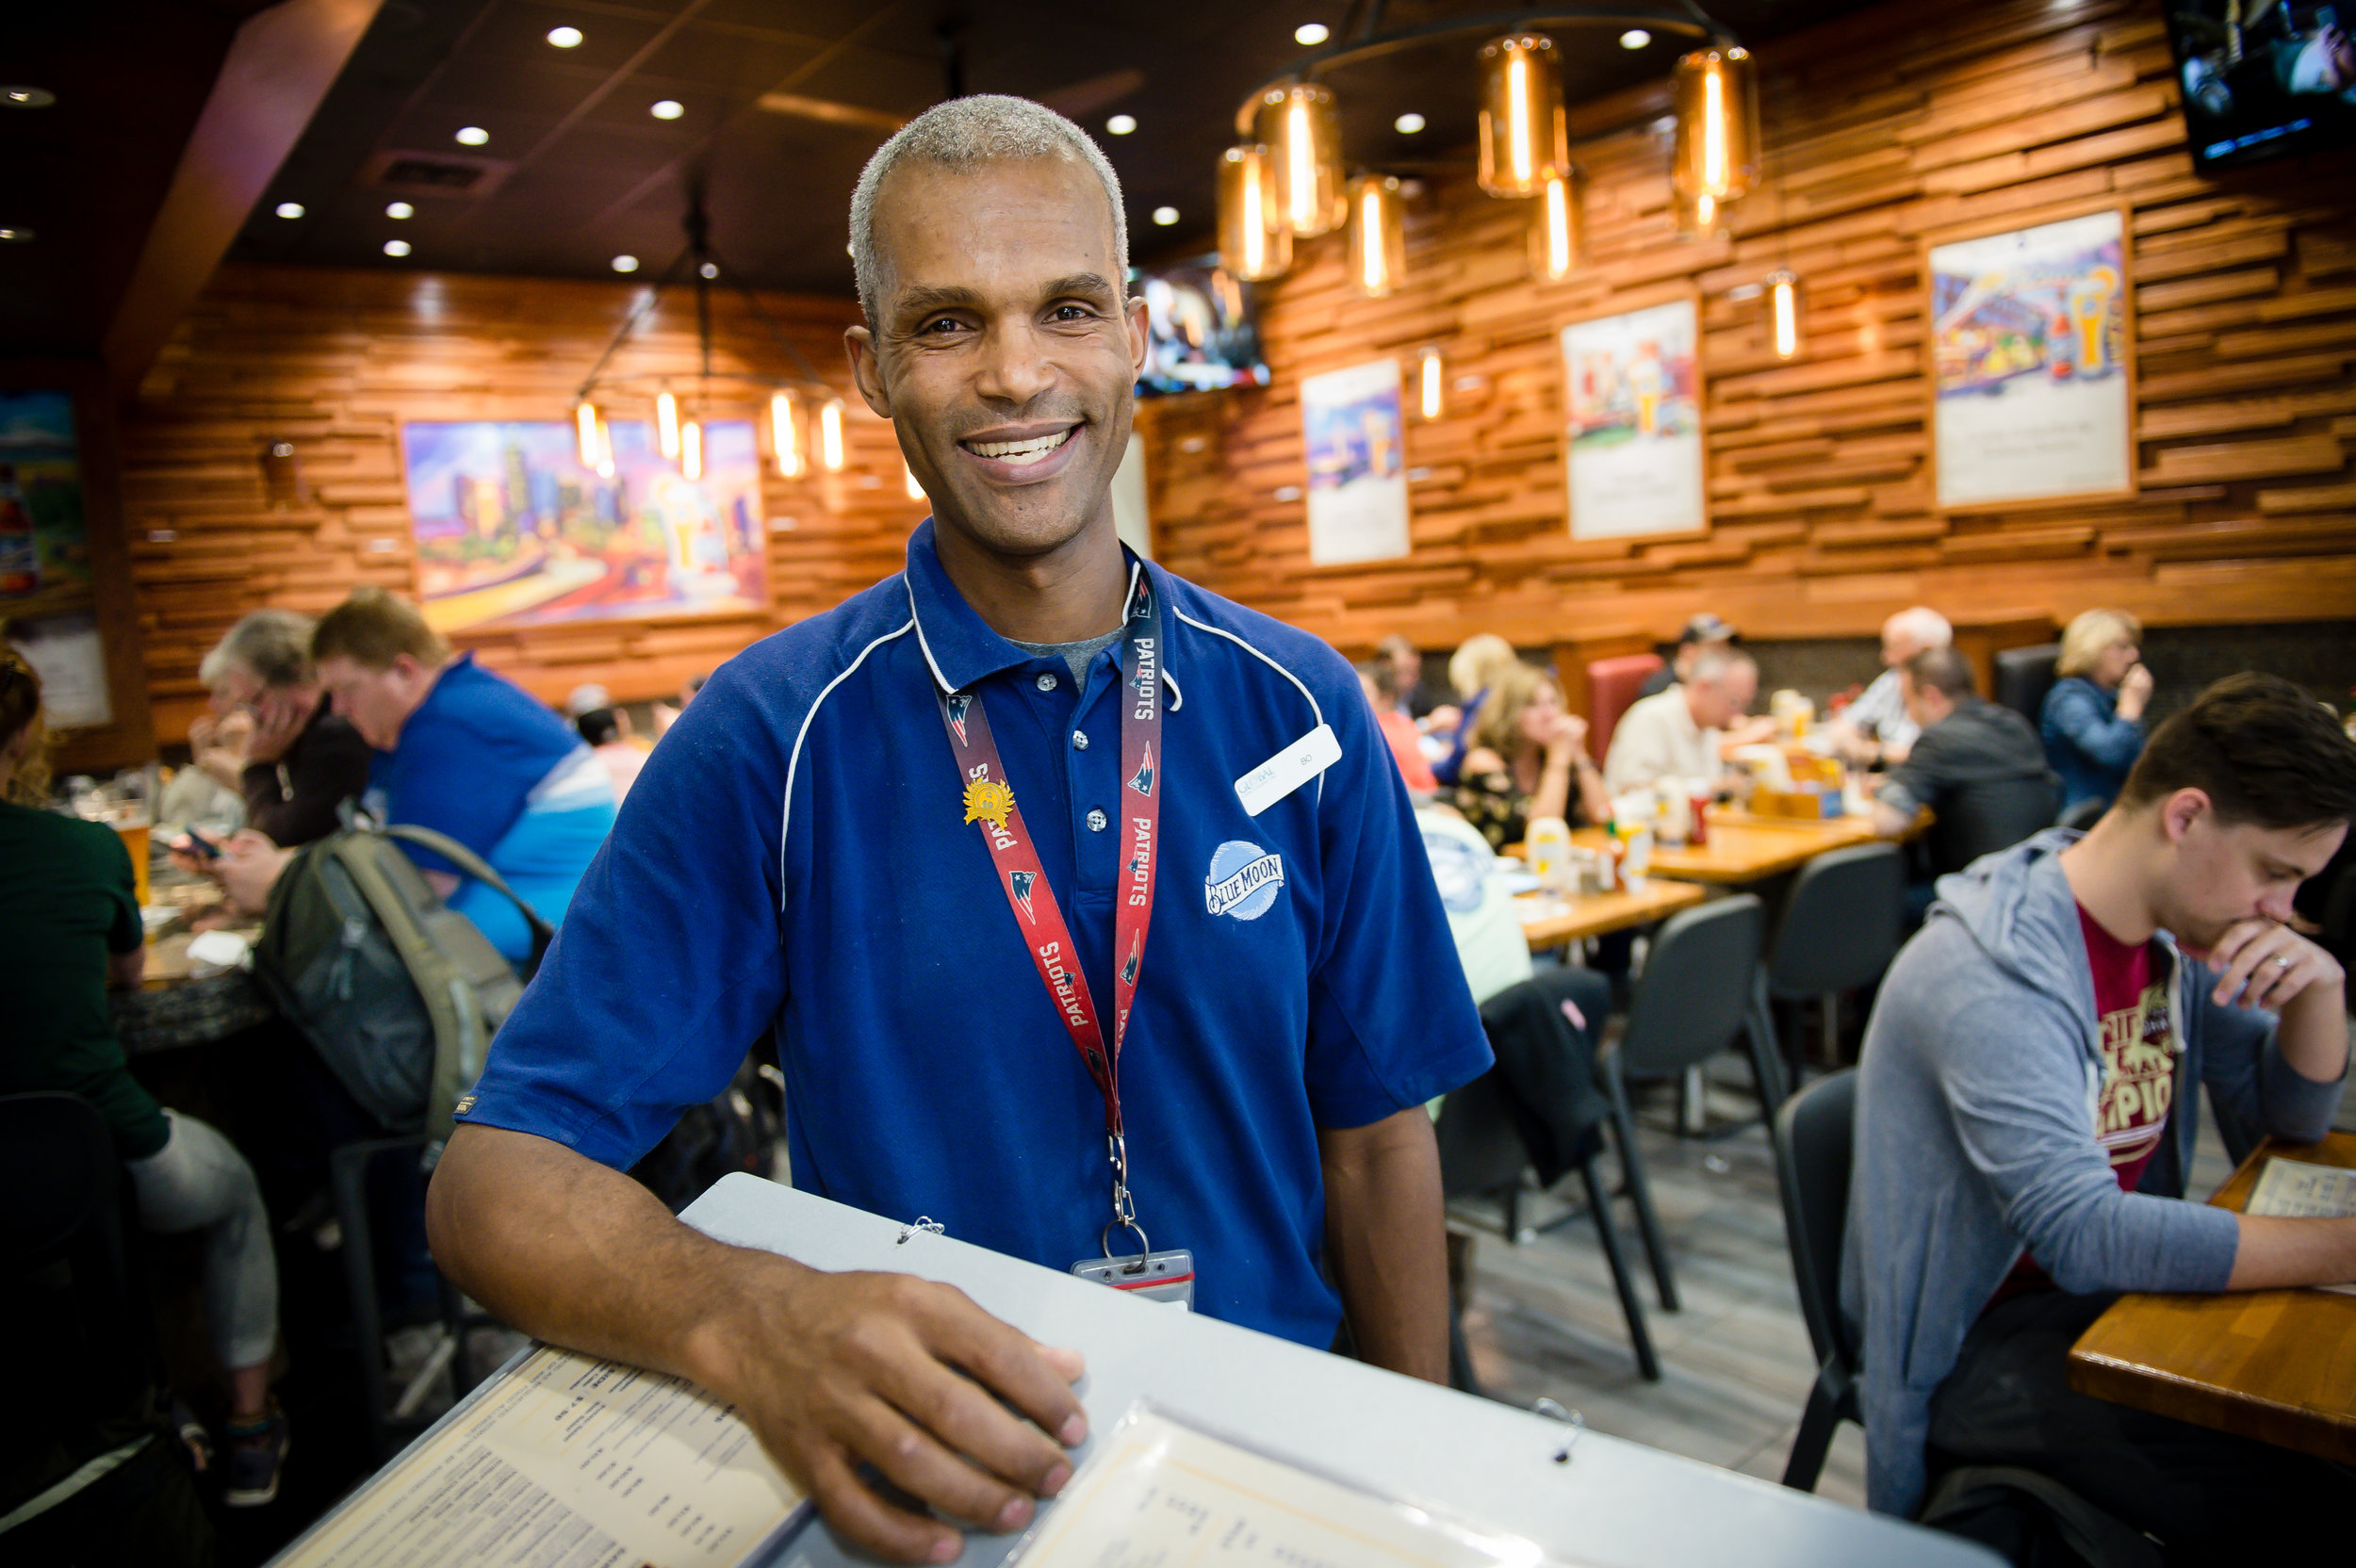 Bo Peterson, server and shift lead at the Blue Moon Brewhouse, poses for a photo at the Concourse B restaurant at Hartsfield Jackson Atlanta International Airport Friday, 28 Sept. 2018.